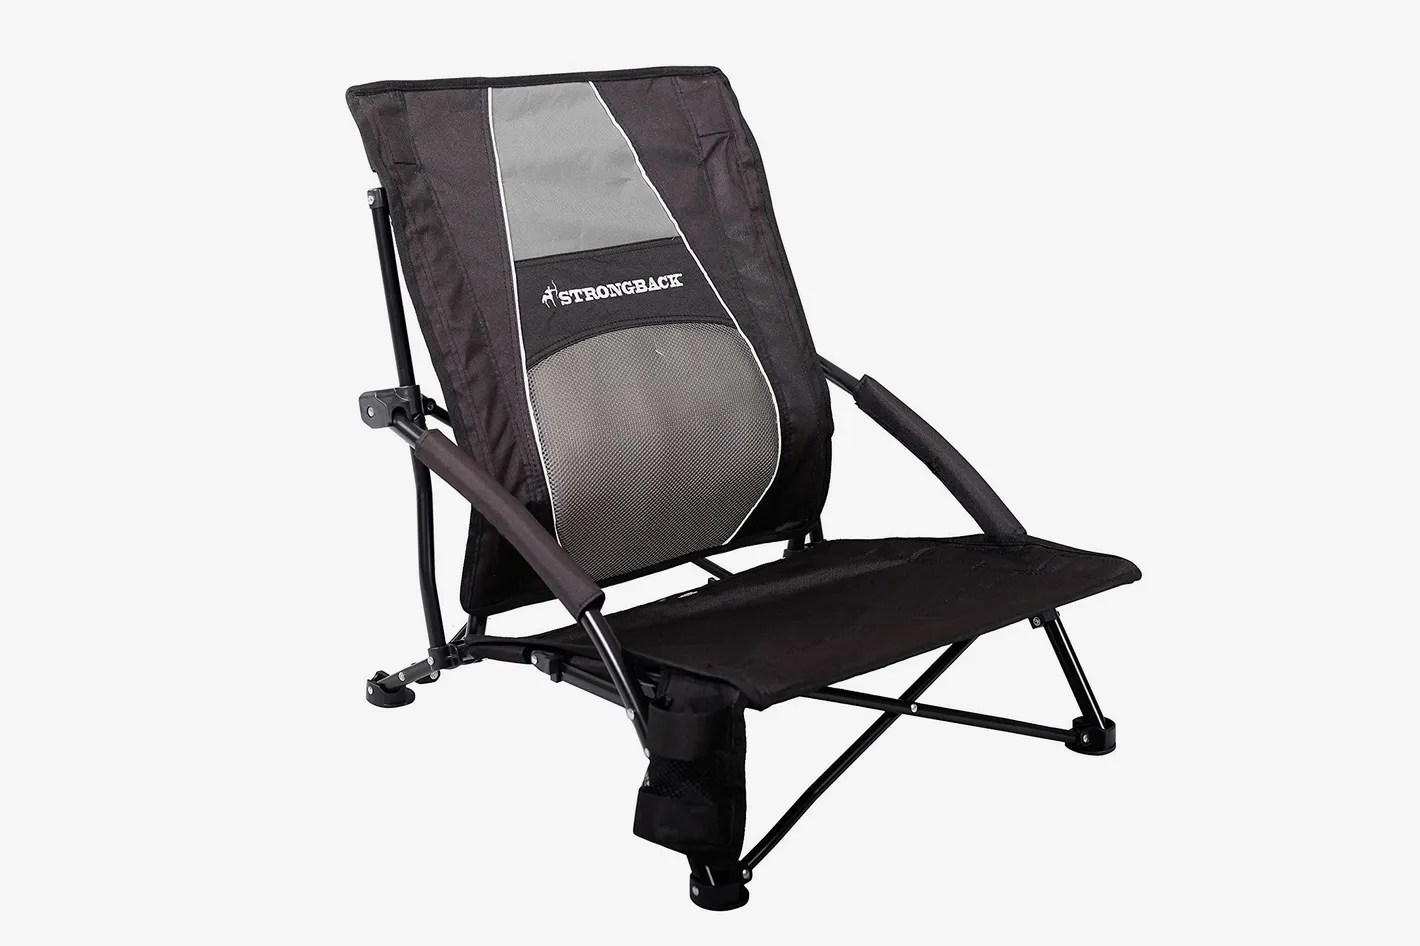 portable back support for chair white rolling dining chairs the 20 best beach 2018